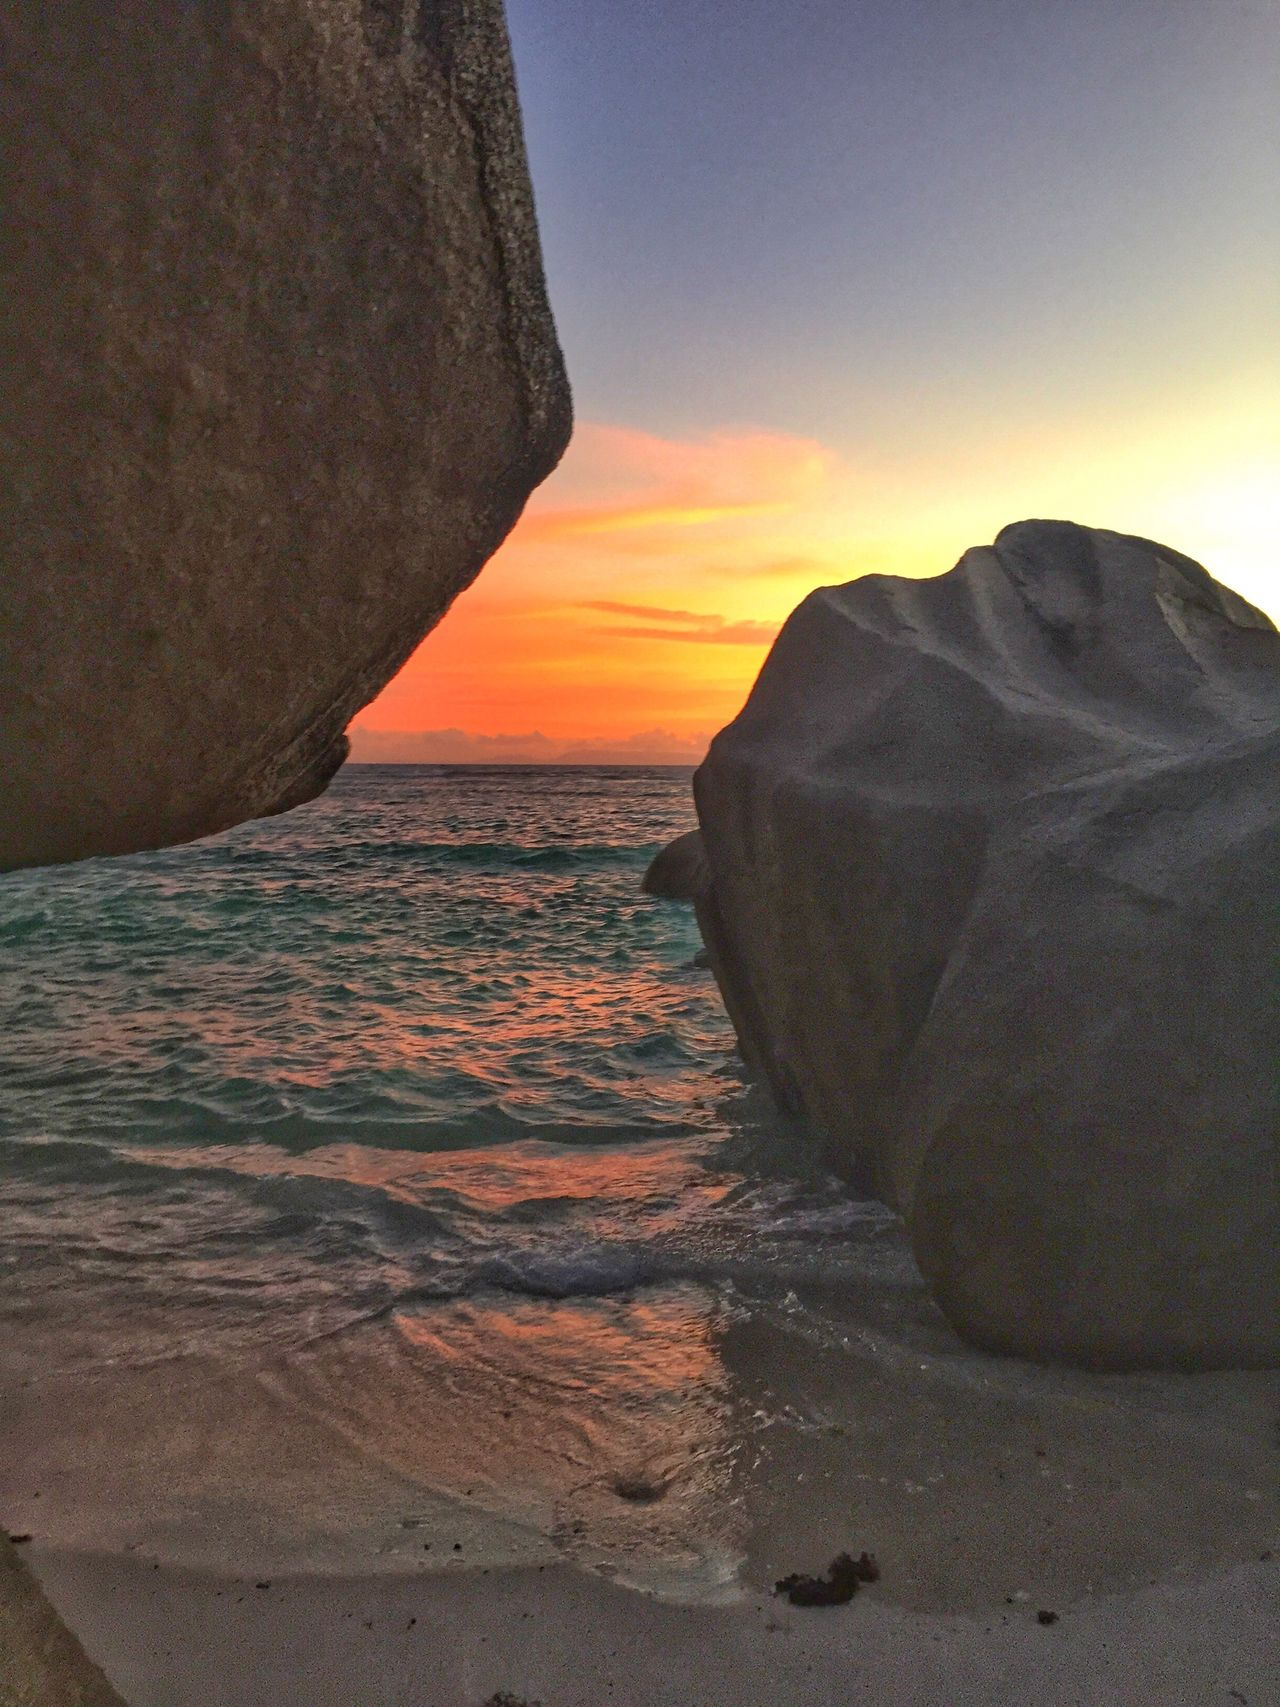 Seychelles Rocks And Water sunset La digue island Stall island landscape Naturelovers Vacation Wonderful Nature Colours